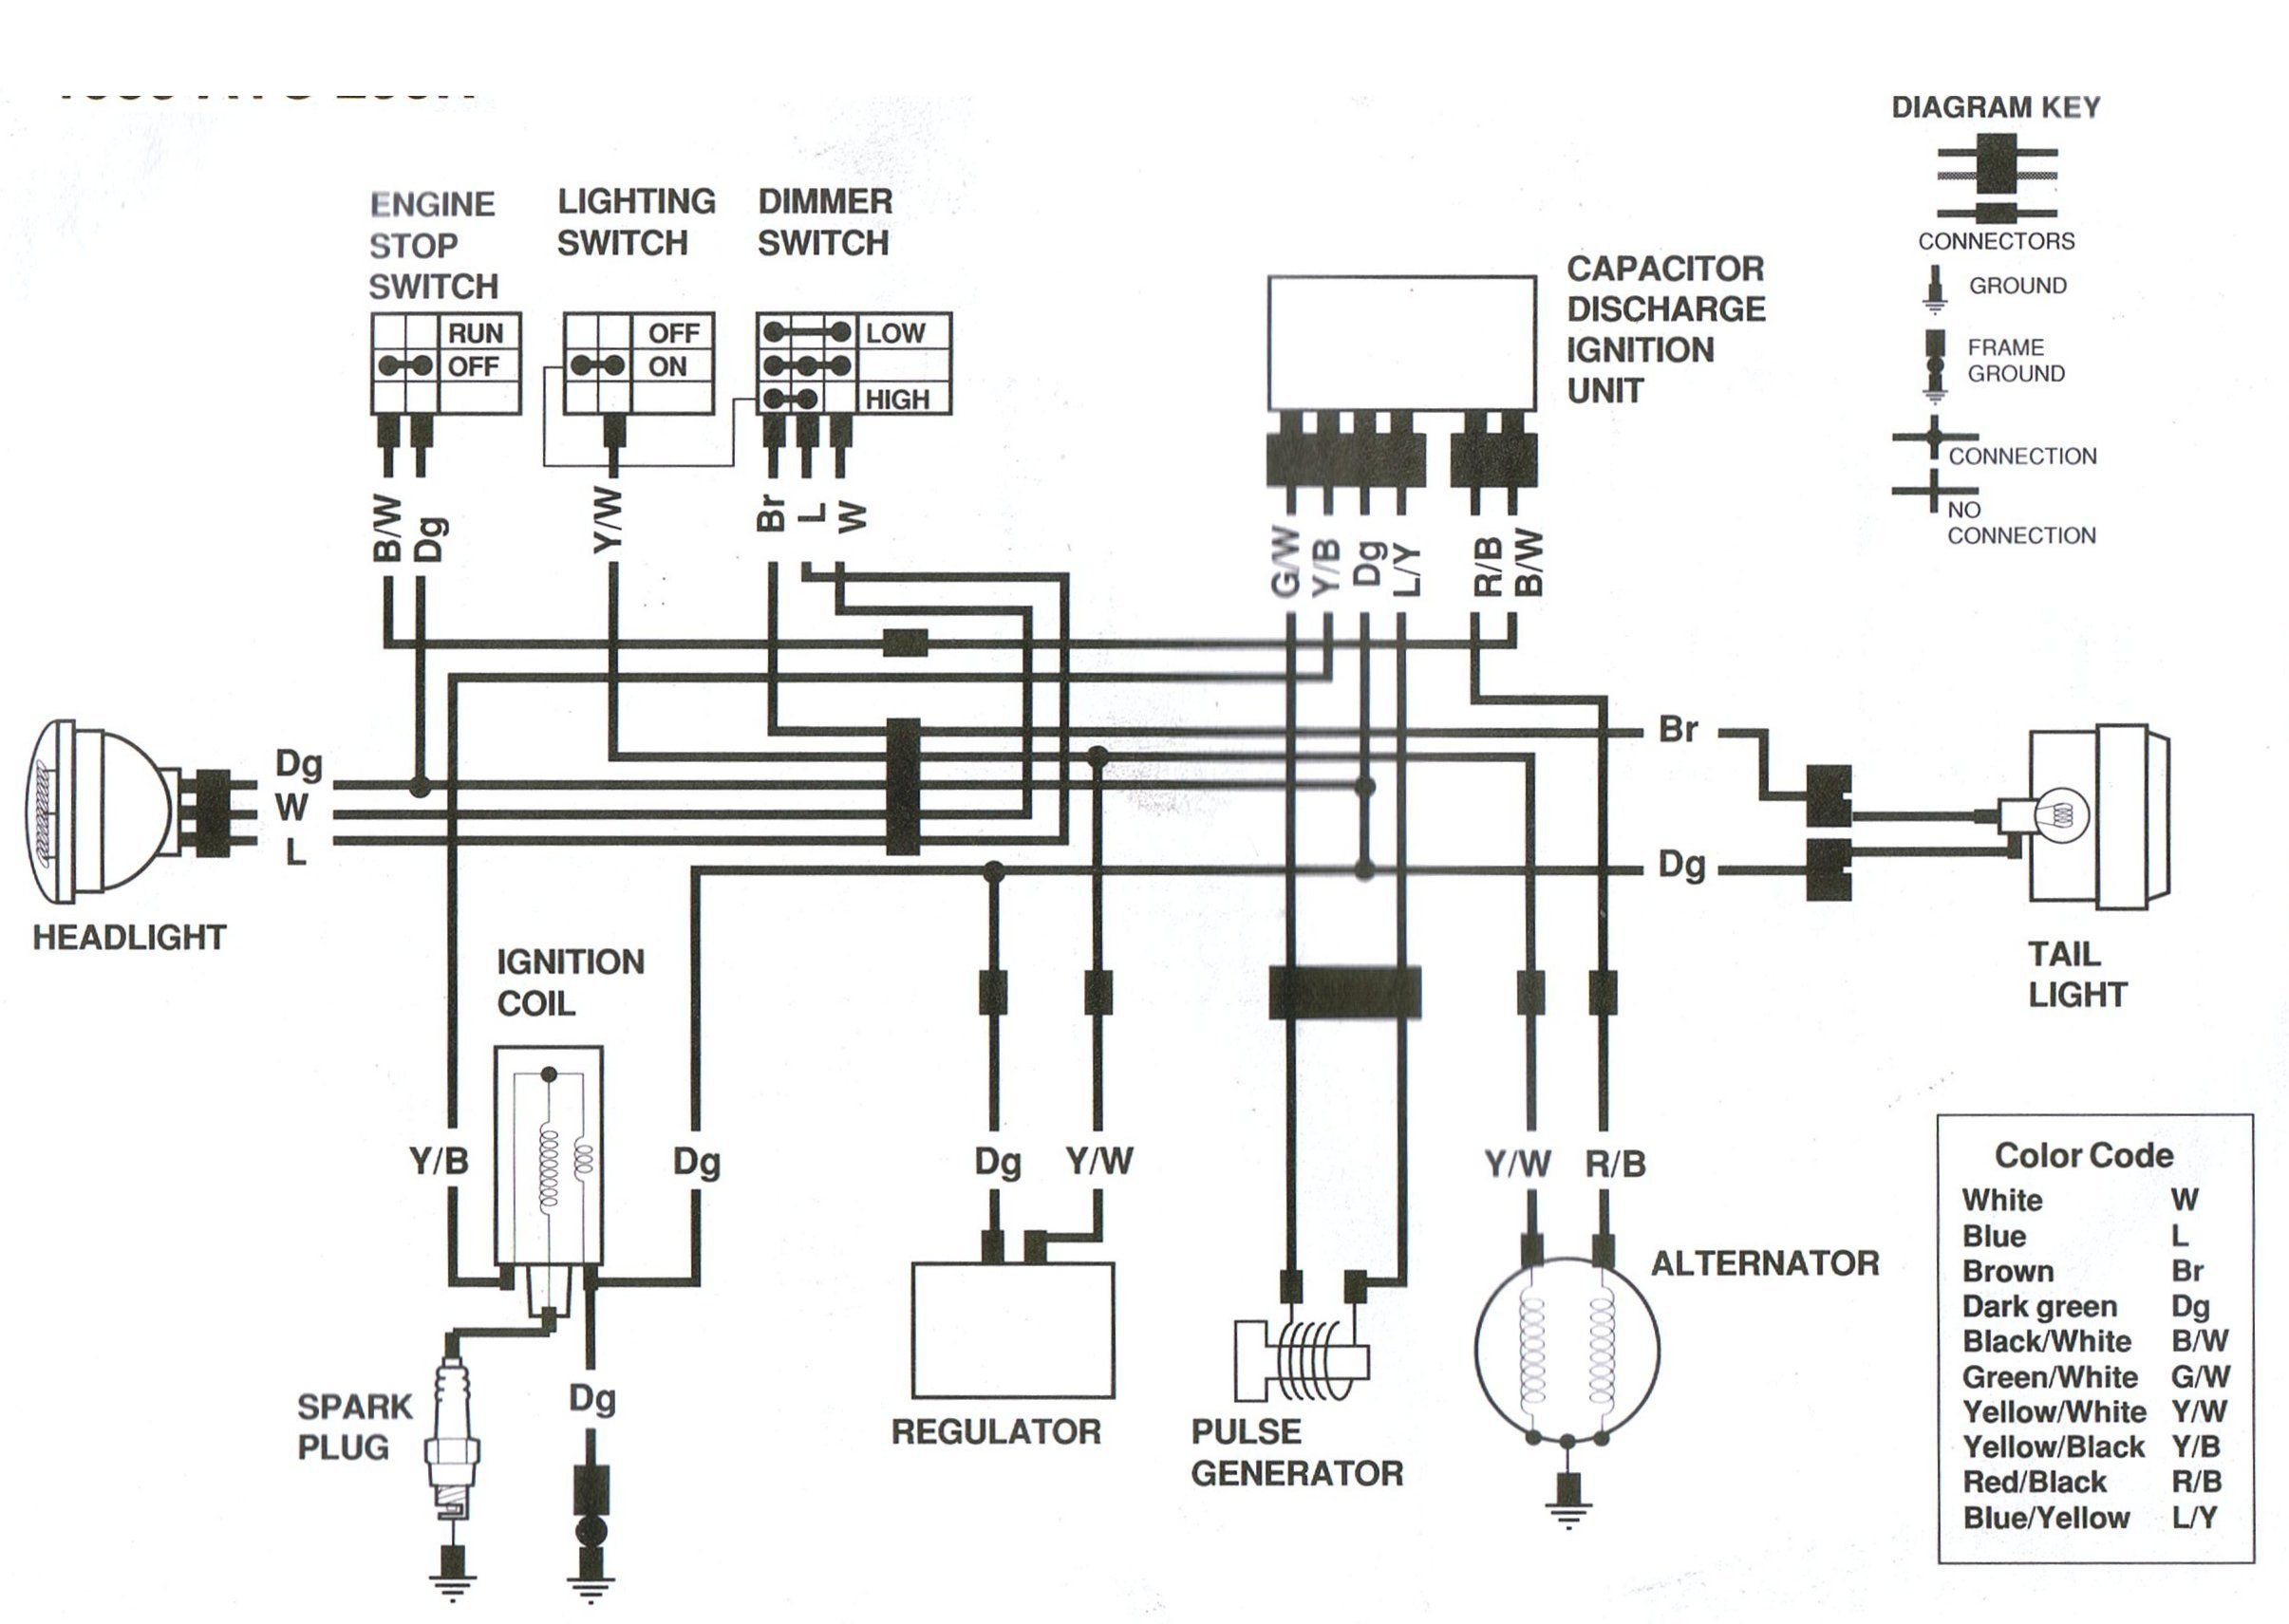 250r wiring diagram